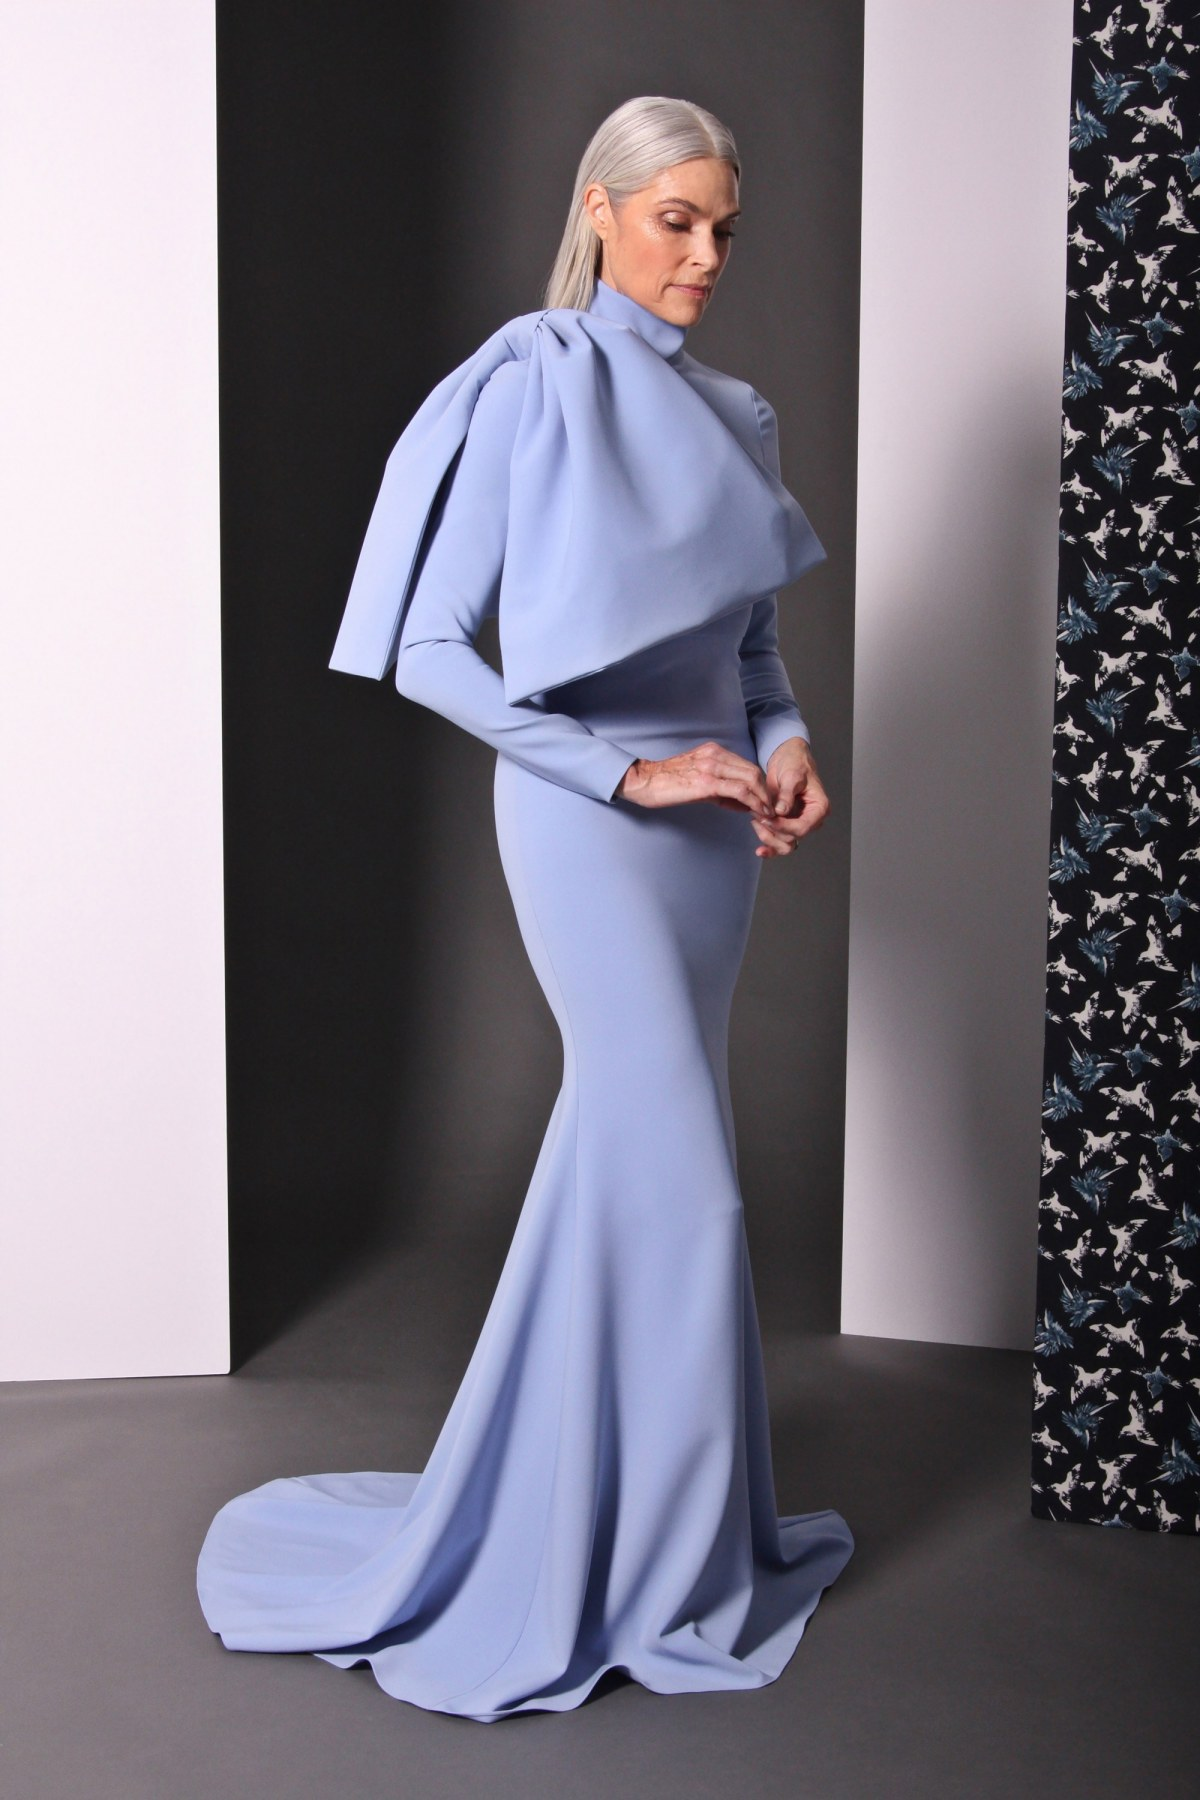 christian-siriano-pre-fall-2017-fashion-show-the-impression-34